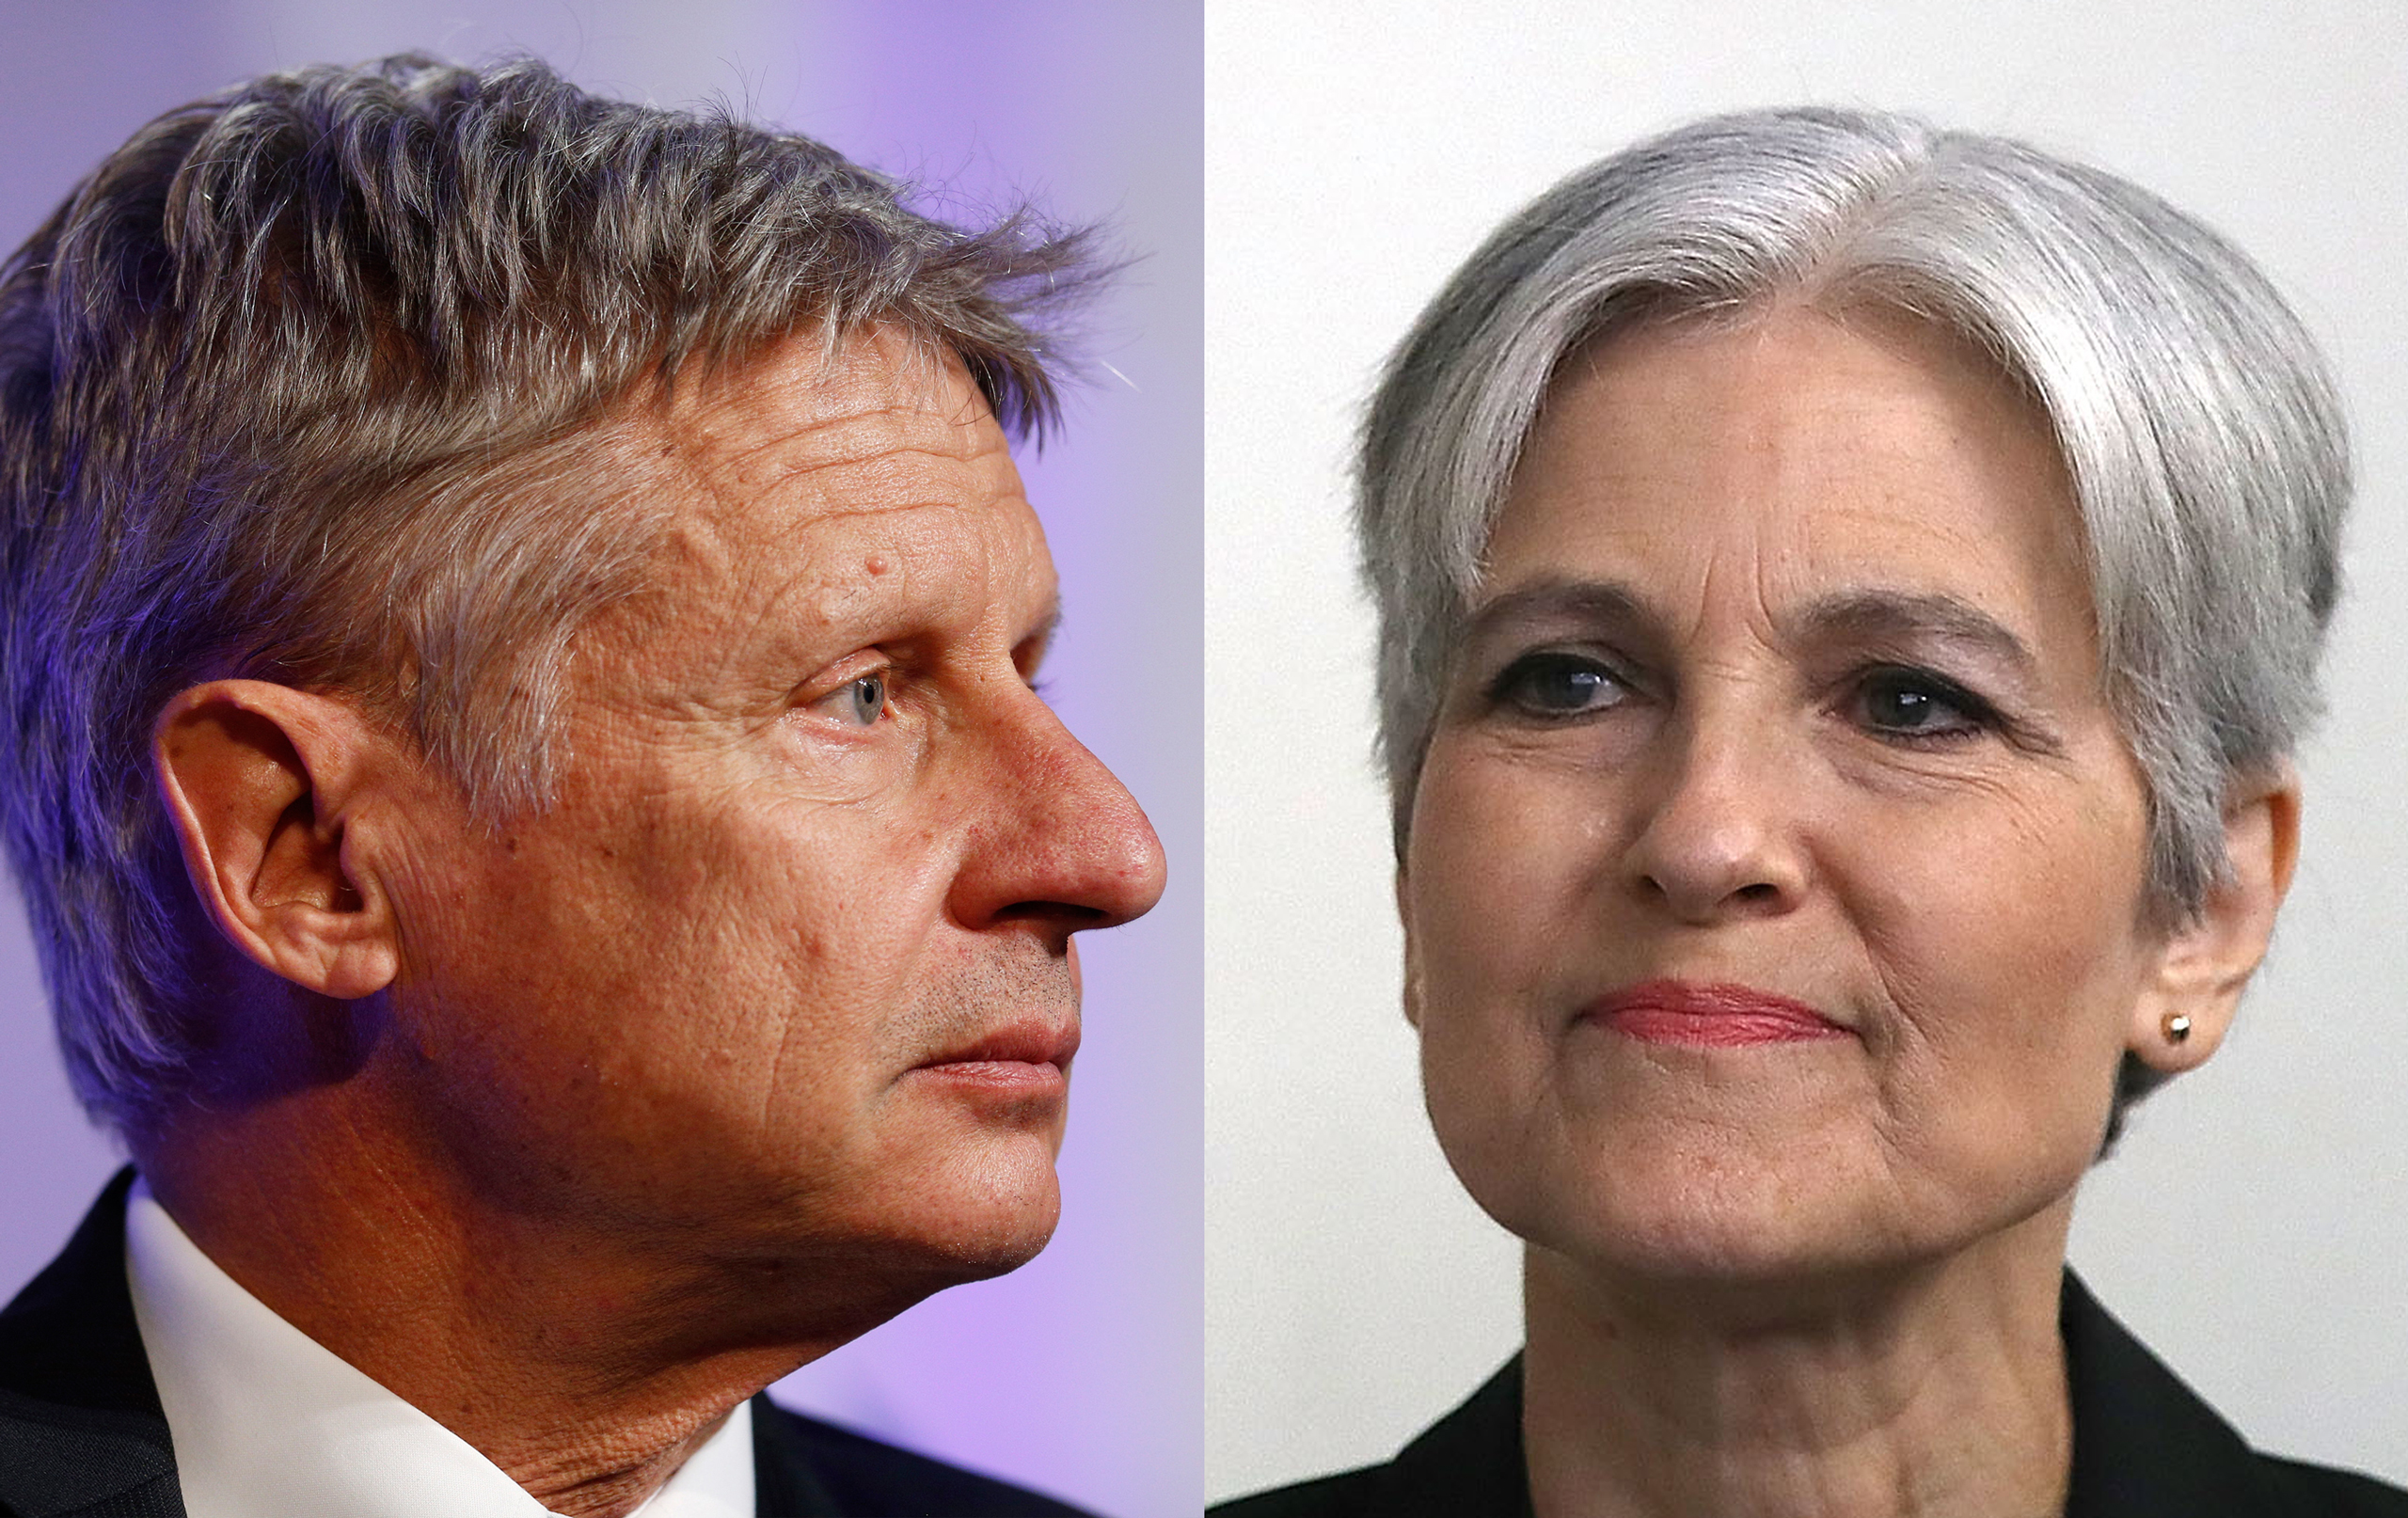 Gary Johnson, left, during a campaign event at Purdue University in West Lafayette, Ind., on Sept. 13, 2016; Jill Stein, right, prior to a press conference at the National Press Club in Washington, D.C., on Aug. 23, 2016